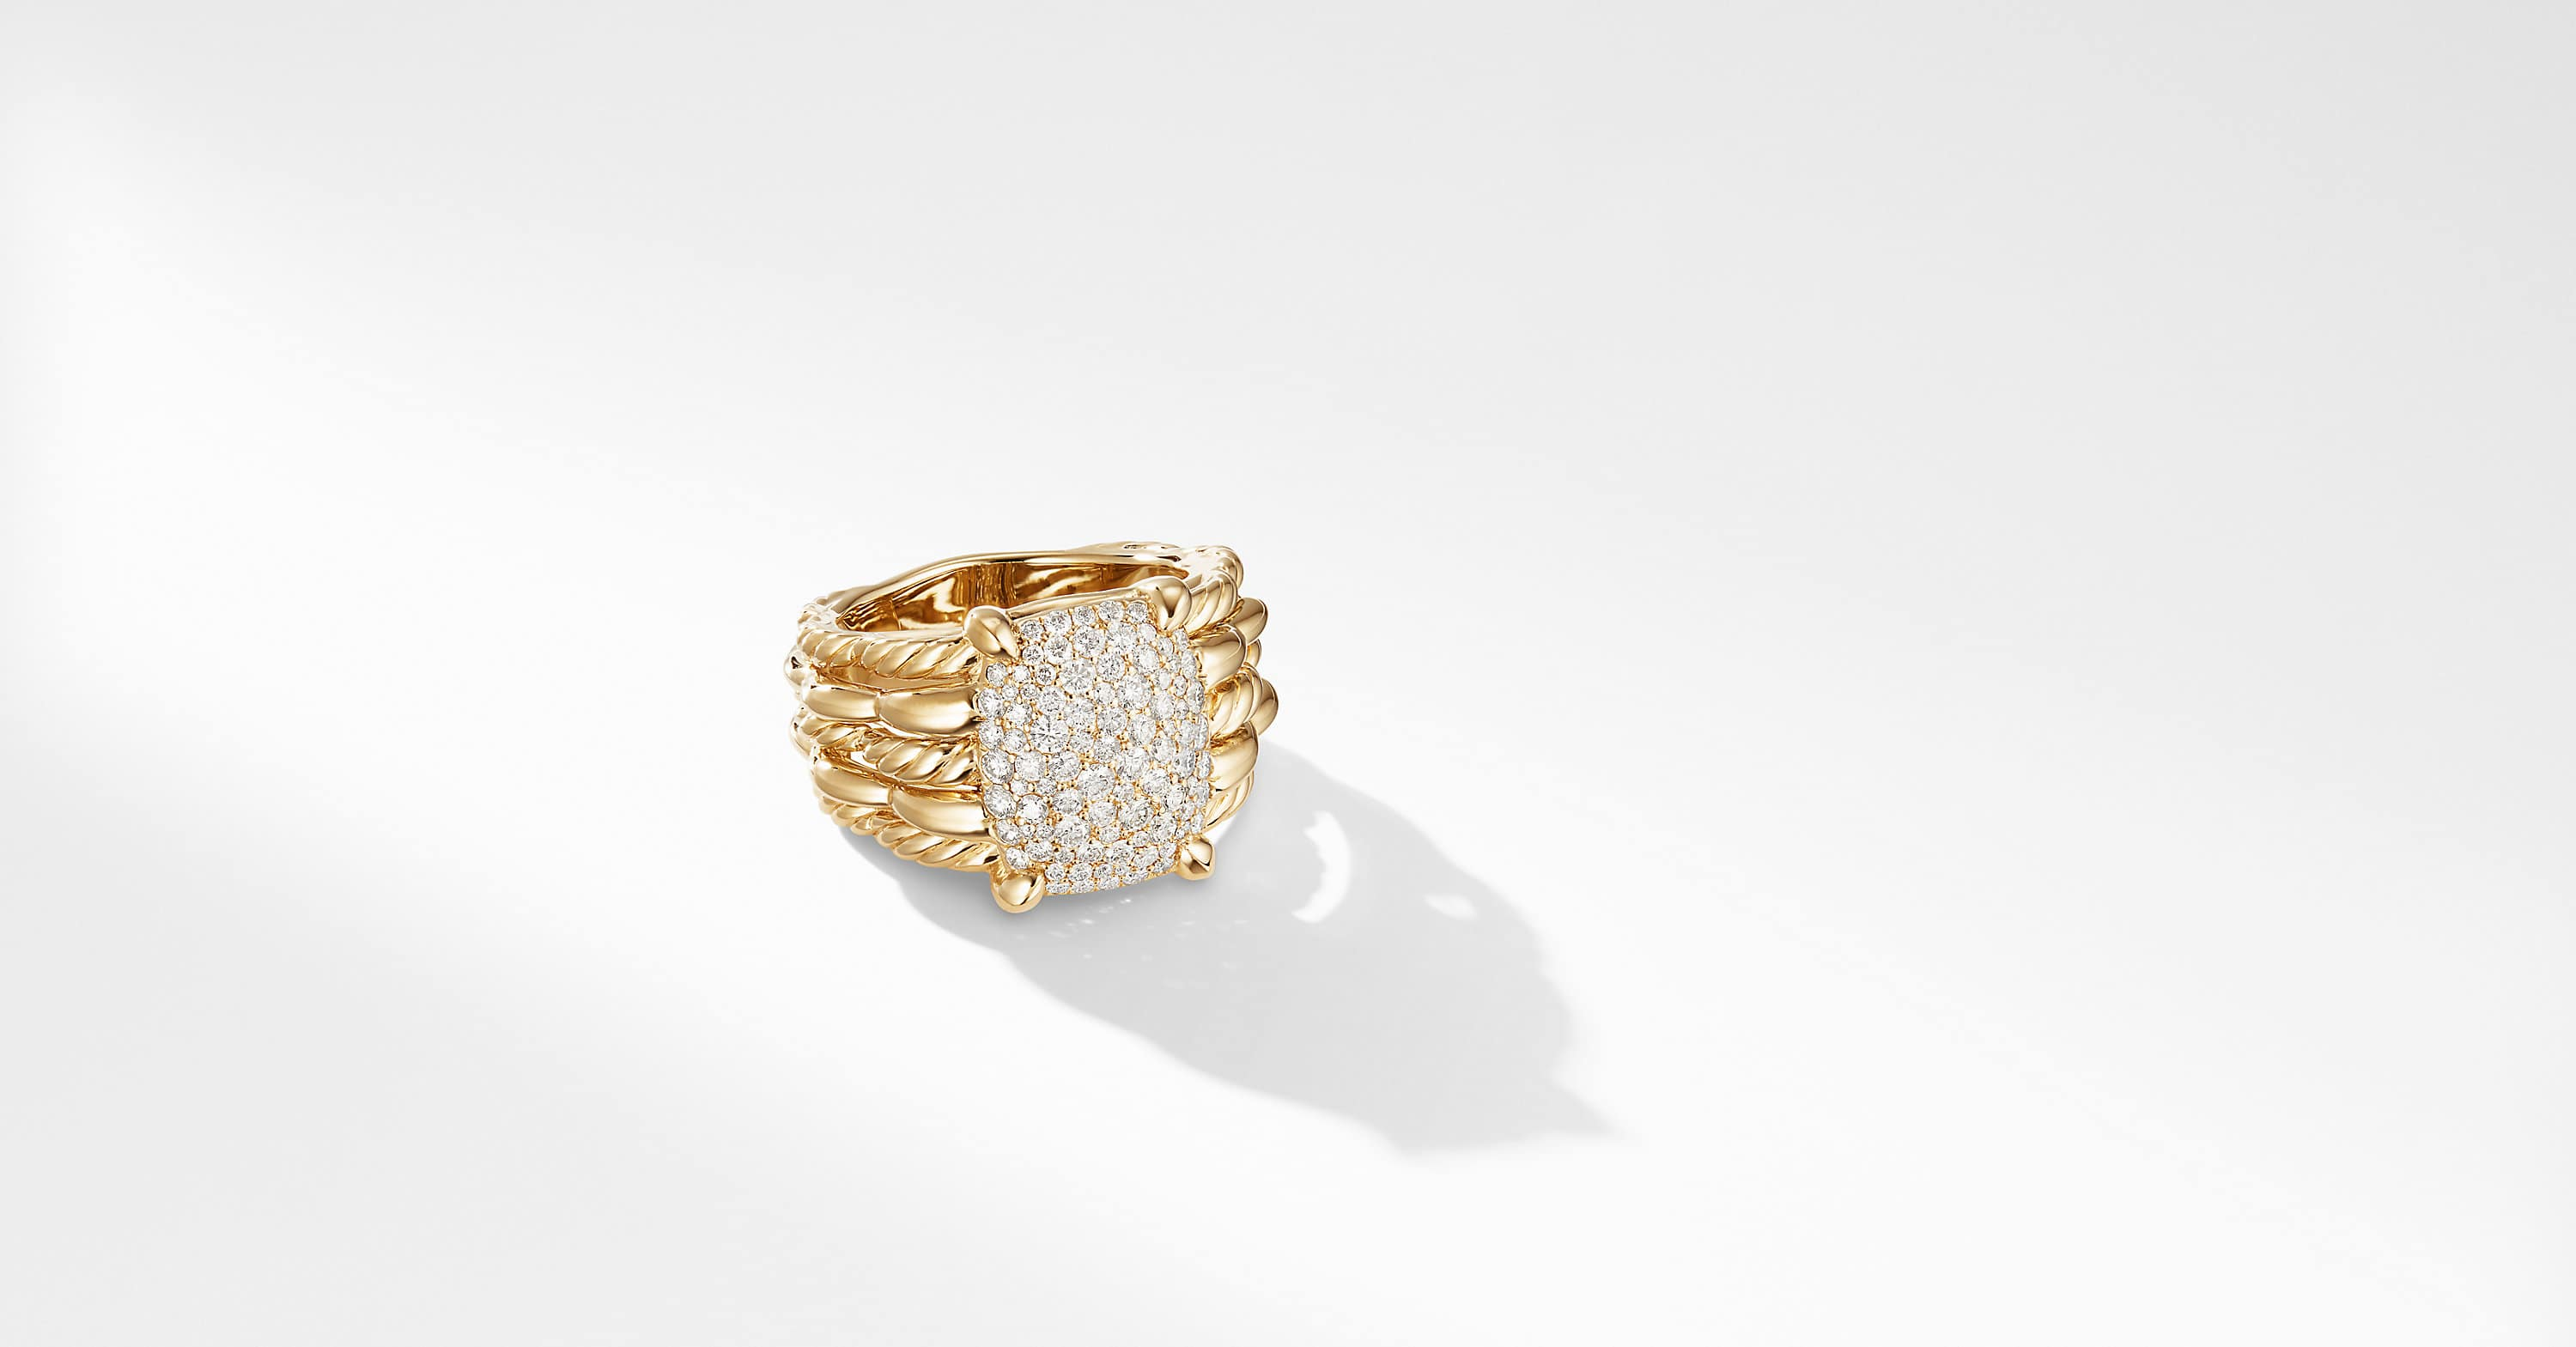 Tides Statement Ring in 18K Yellow Gold with Pavé Plate